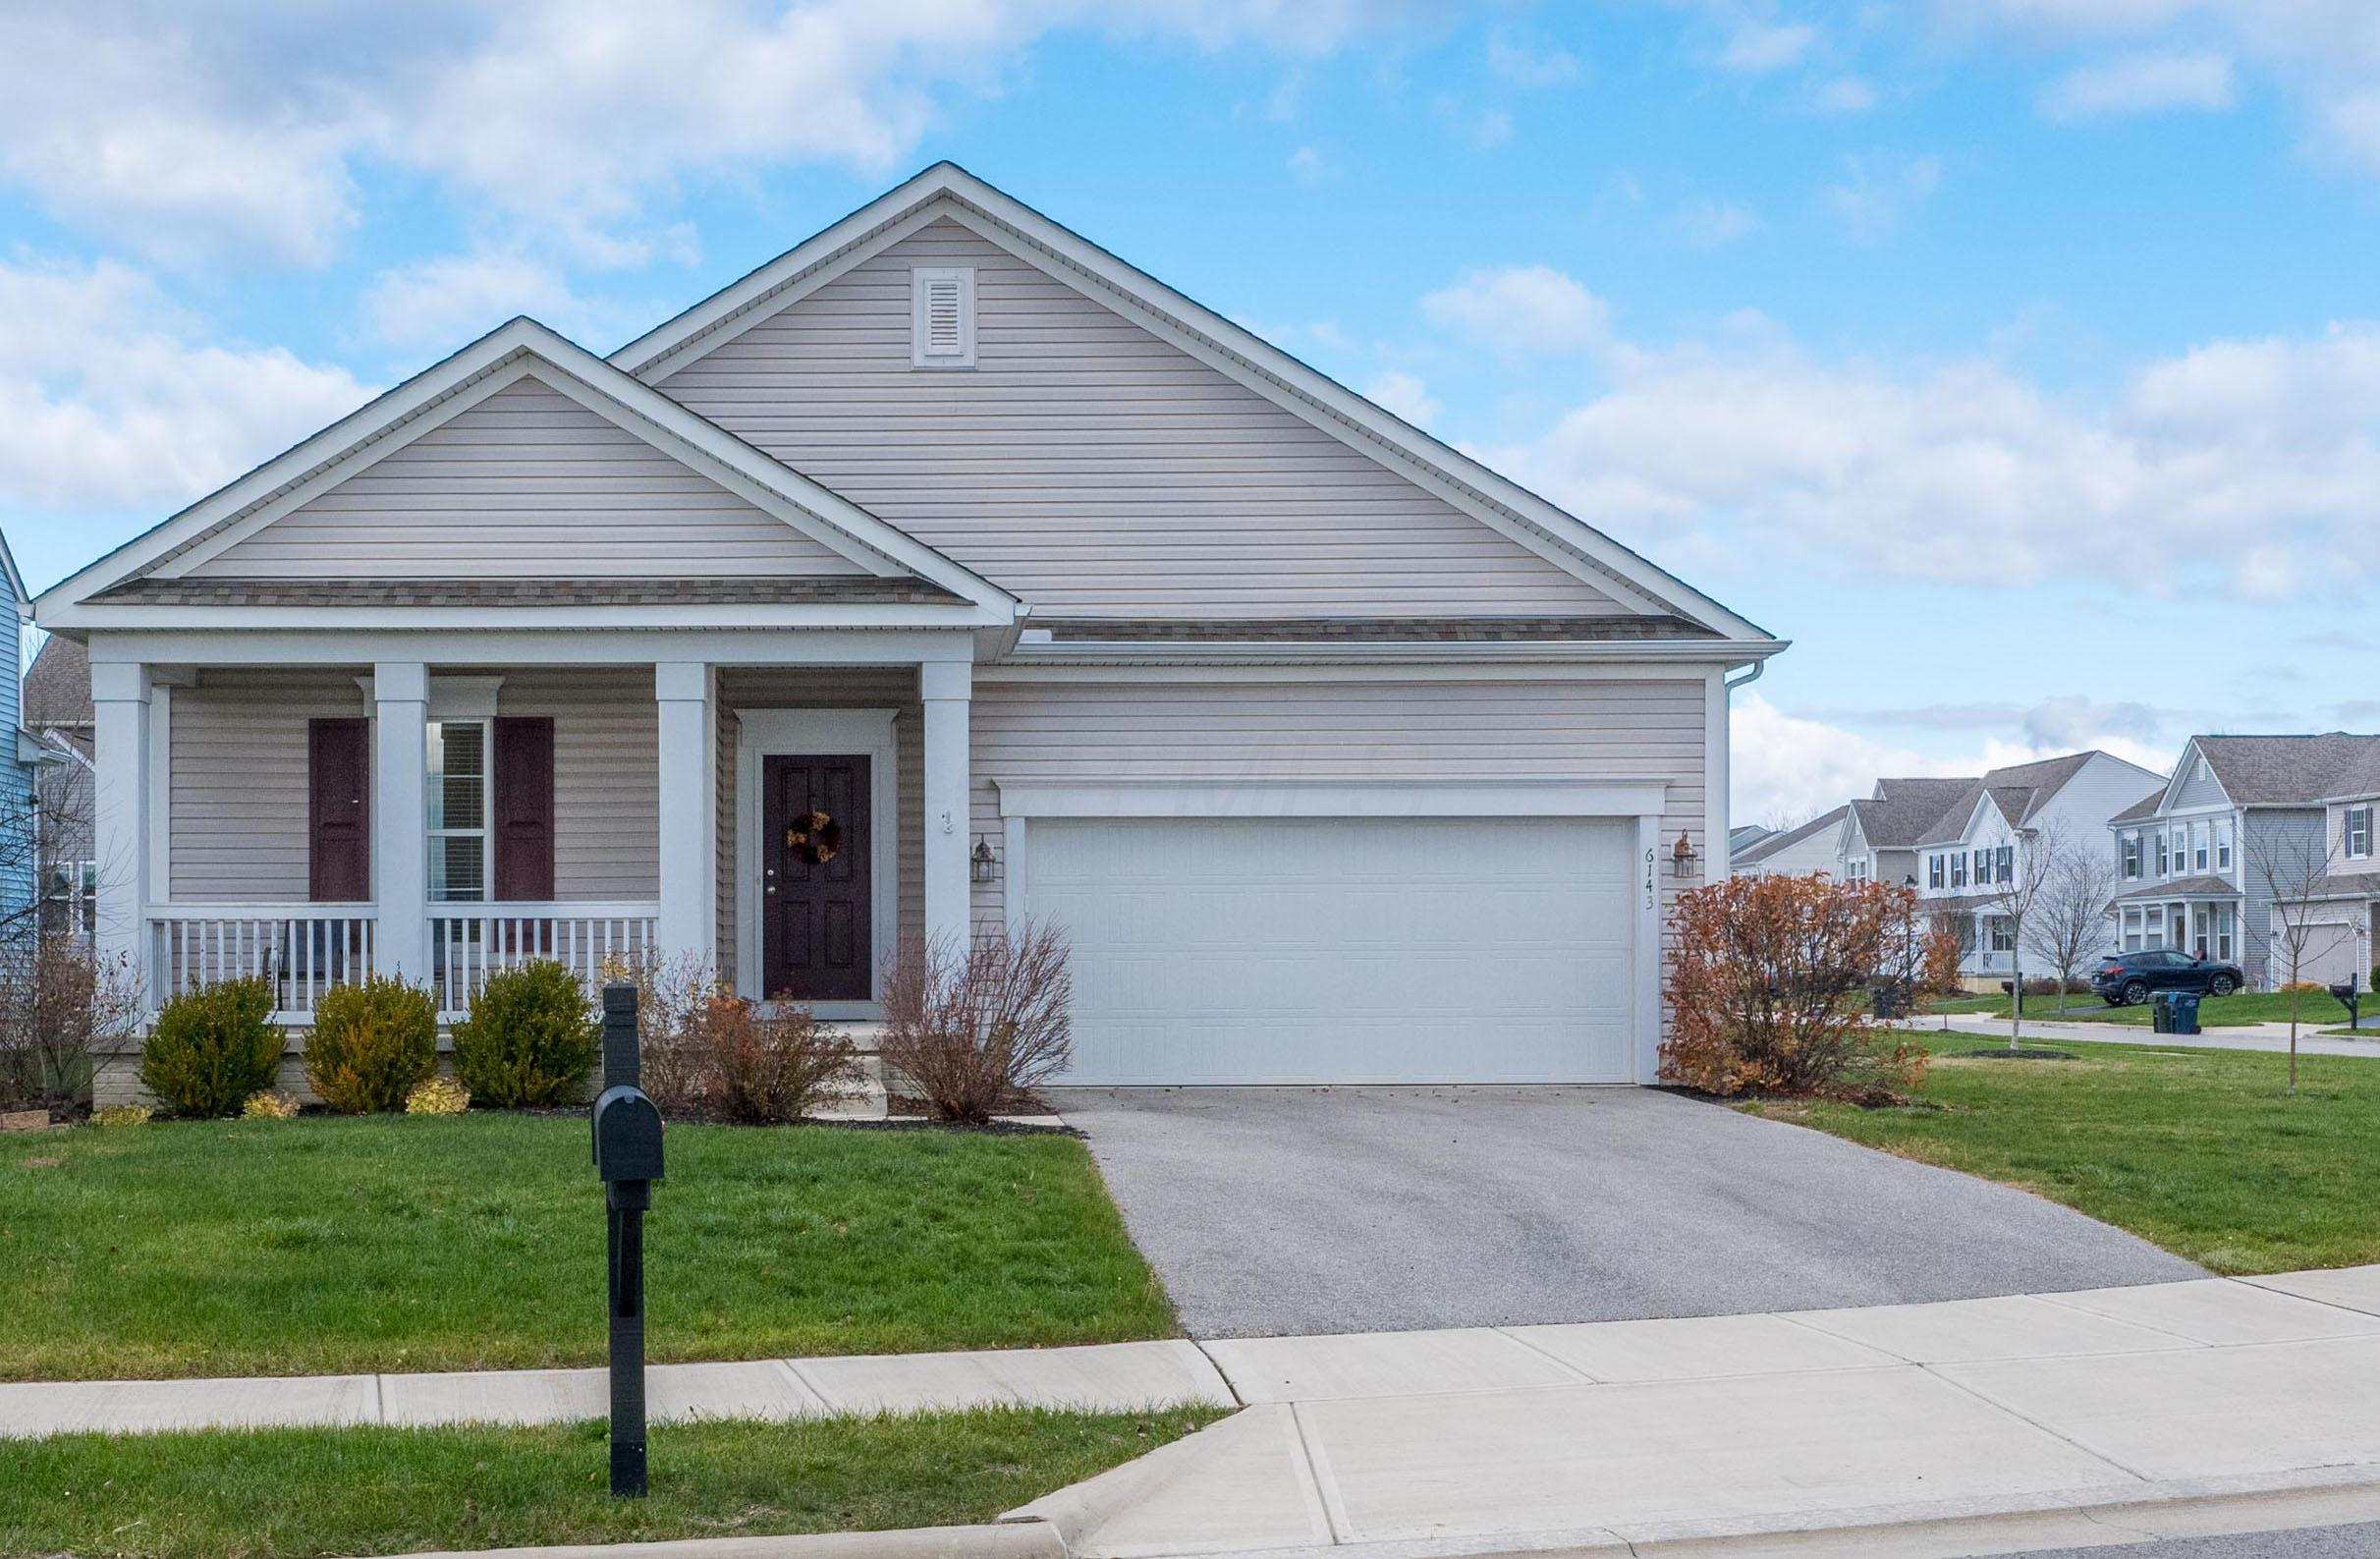 6143 Glade Run Road, Hilliard, Ohio 43026, 3 Bedrooms Bedrooms, ,3 BathroomsBathrooms,Residential,For Sale,Glade Run,220040805